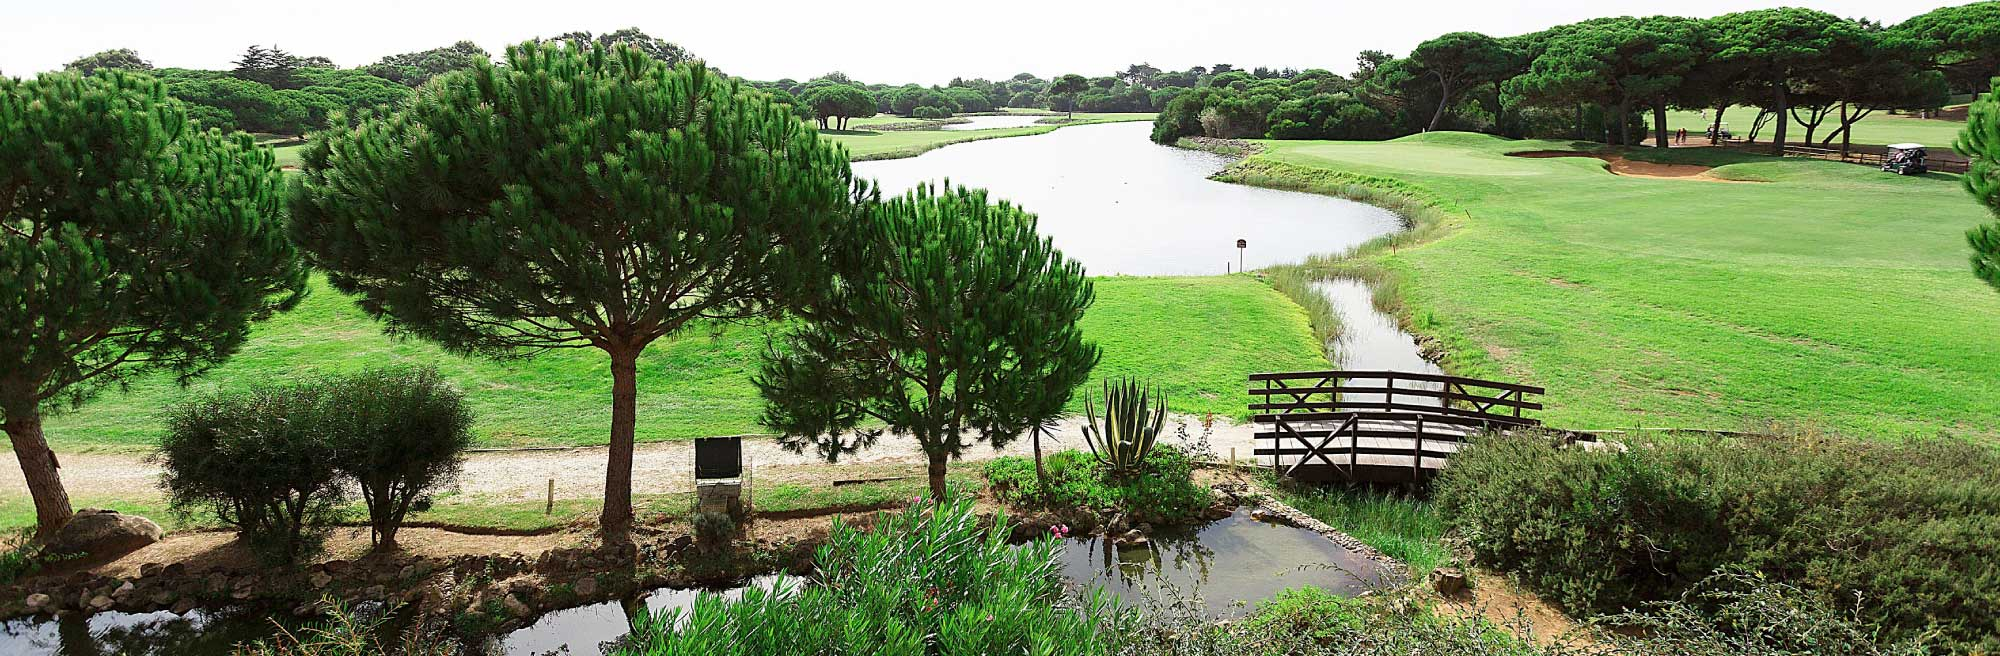 Onyria Quinta da Marinha Golf Resrt, Quick Facts